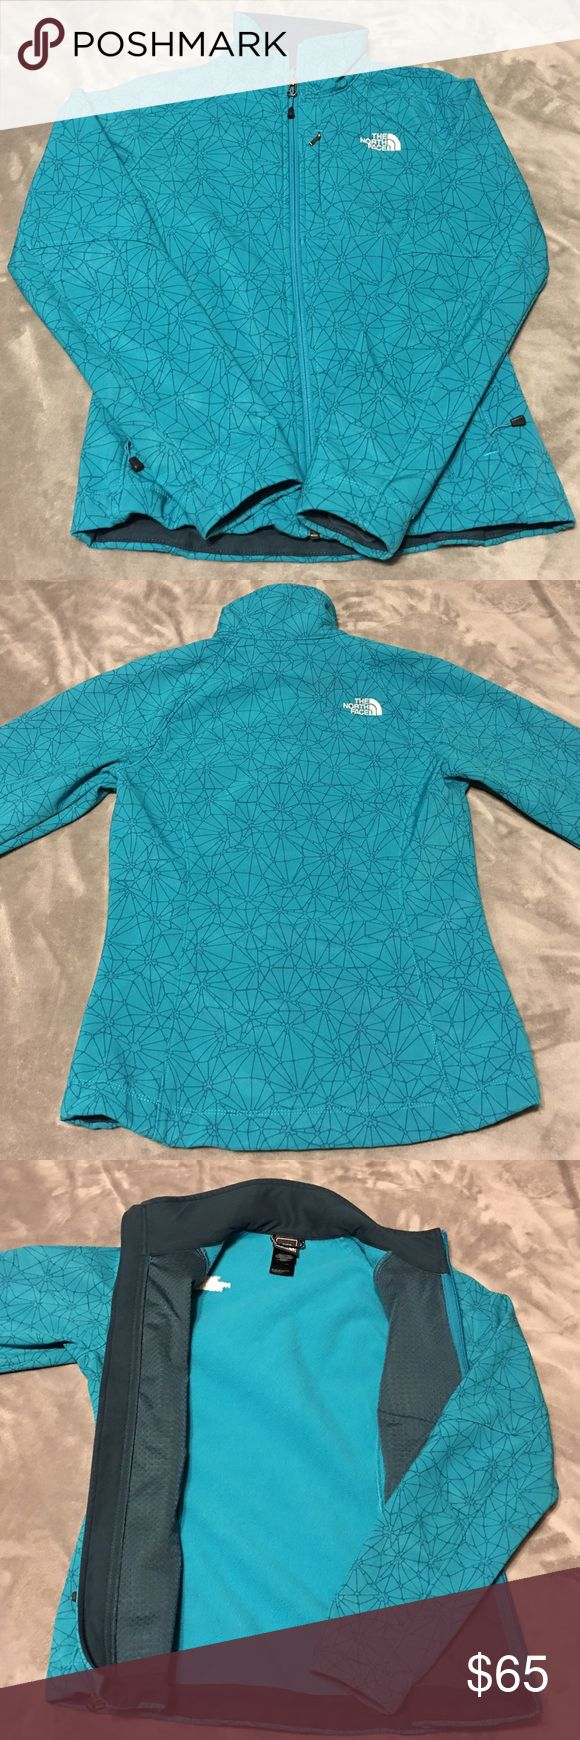 Aqua blue North Face jacket XS Excellent condition, fleece lined lightweight jacket. Gently worn, no signs of wear. Shipping days are Tuesday through Friday. North Face Jackets & Coats Trench Coats